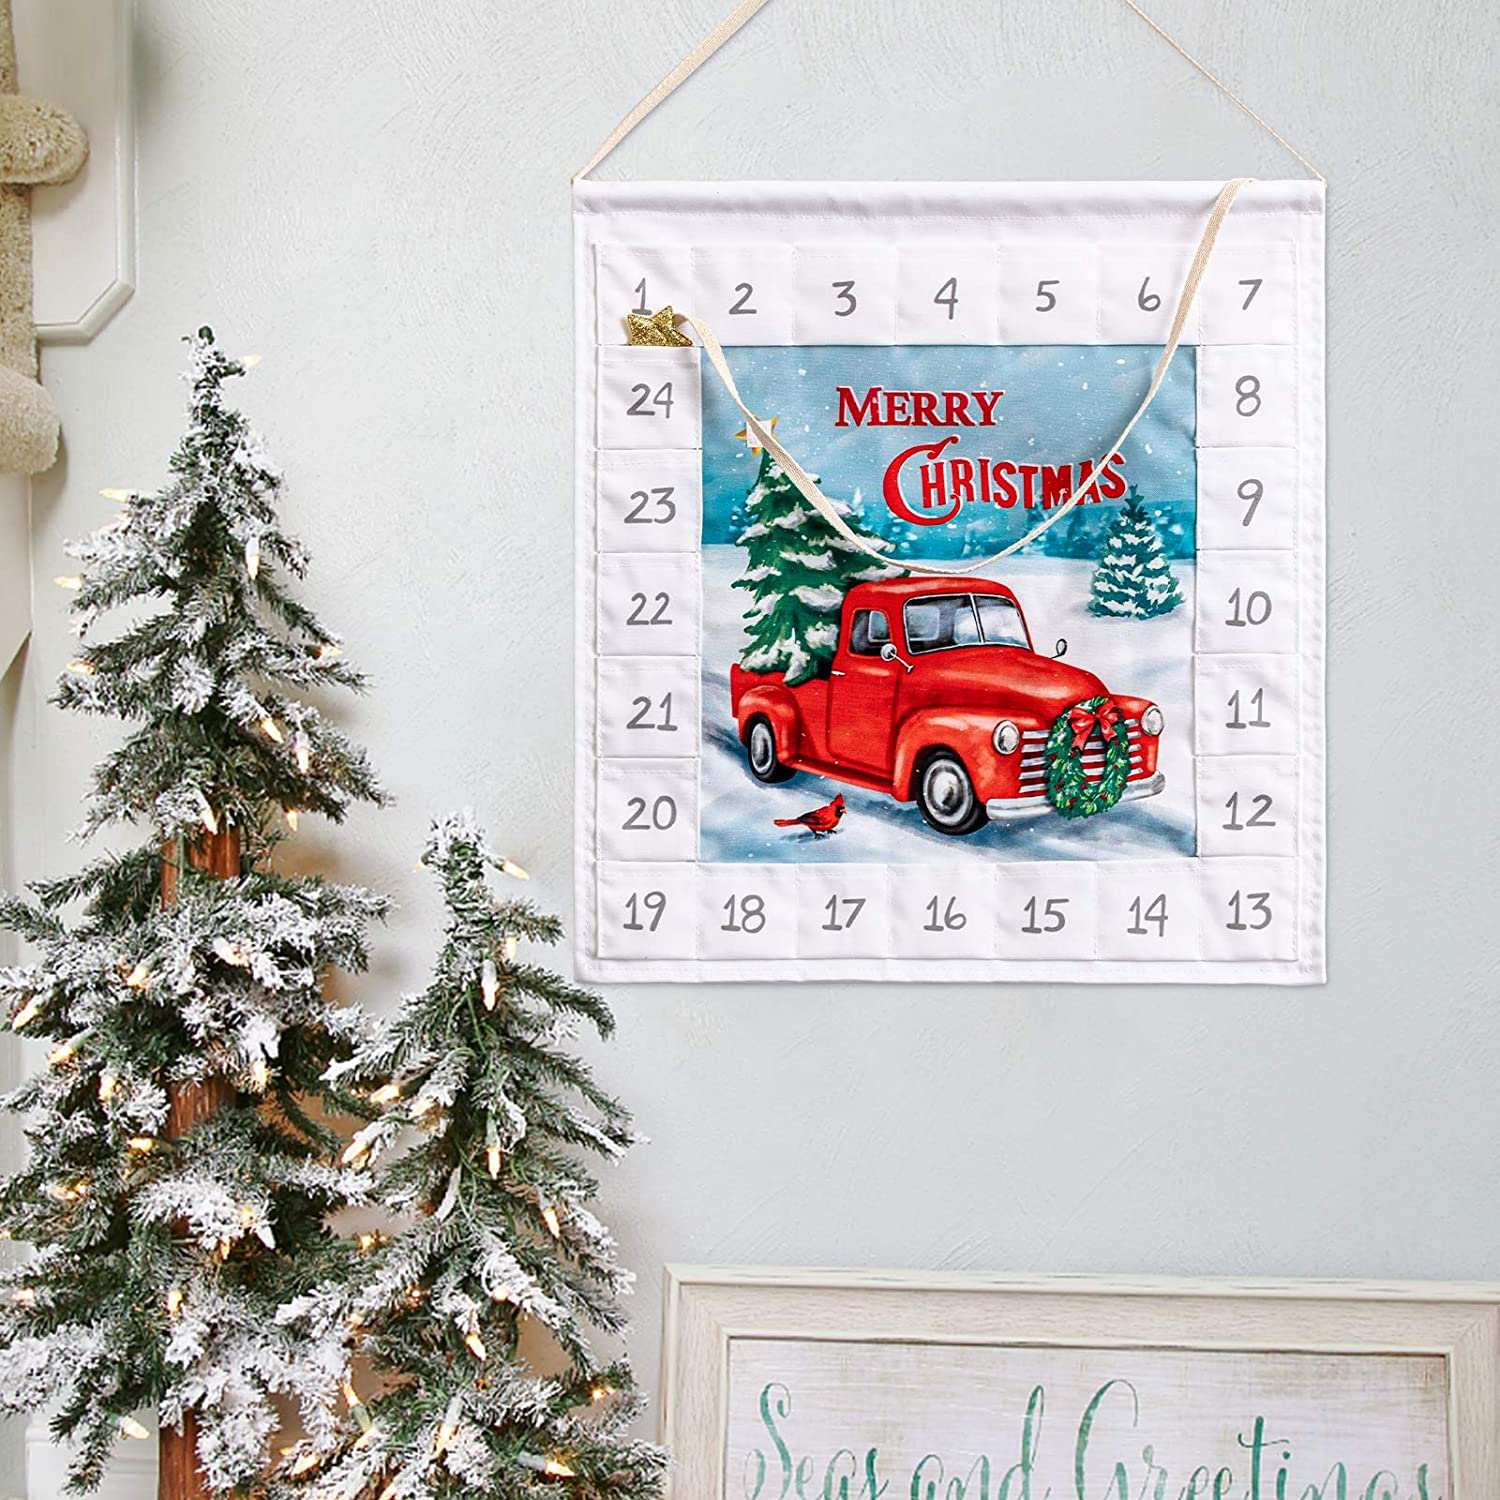 hogardeck Advent Calendar 2020 with 24 Pockets 14.7IN Wall Hanging Bag Indoor/Outdoor Wall Decor Countdown to Christmas Decoration